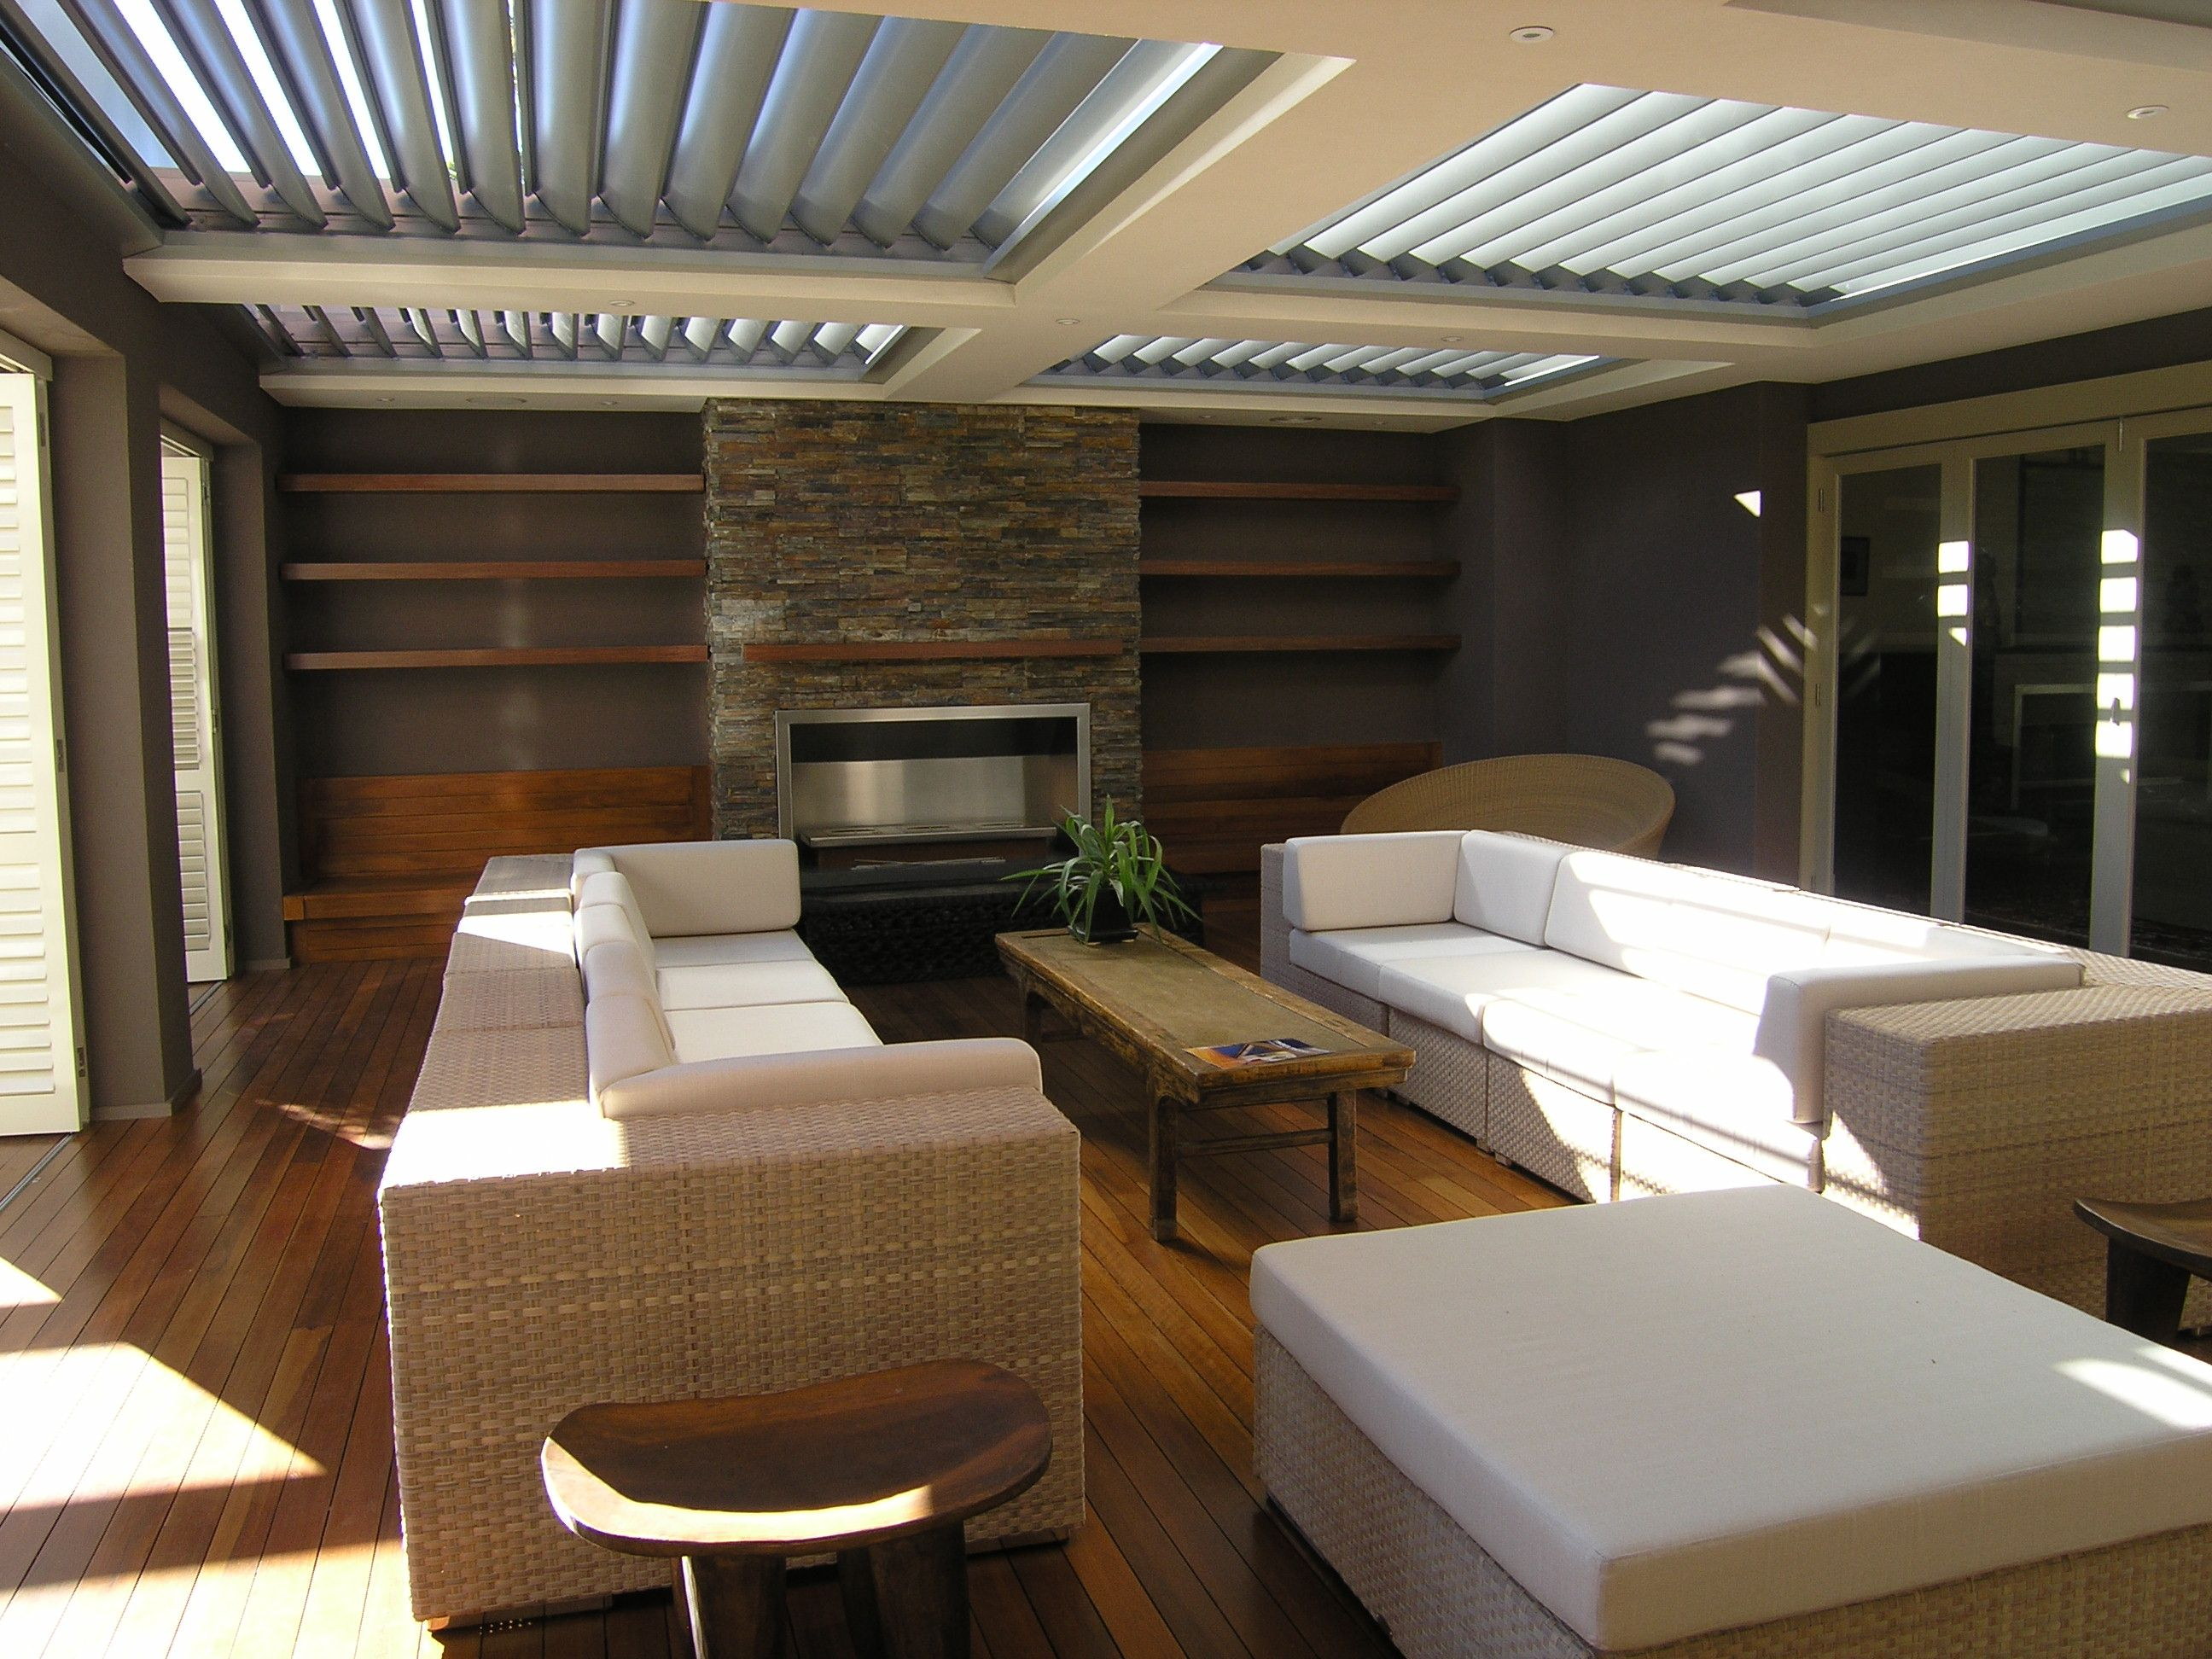 Amazing Outdoor Entertainment Area Love The Skylights In Roof With Blinds To Open Or Close